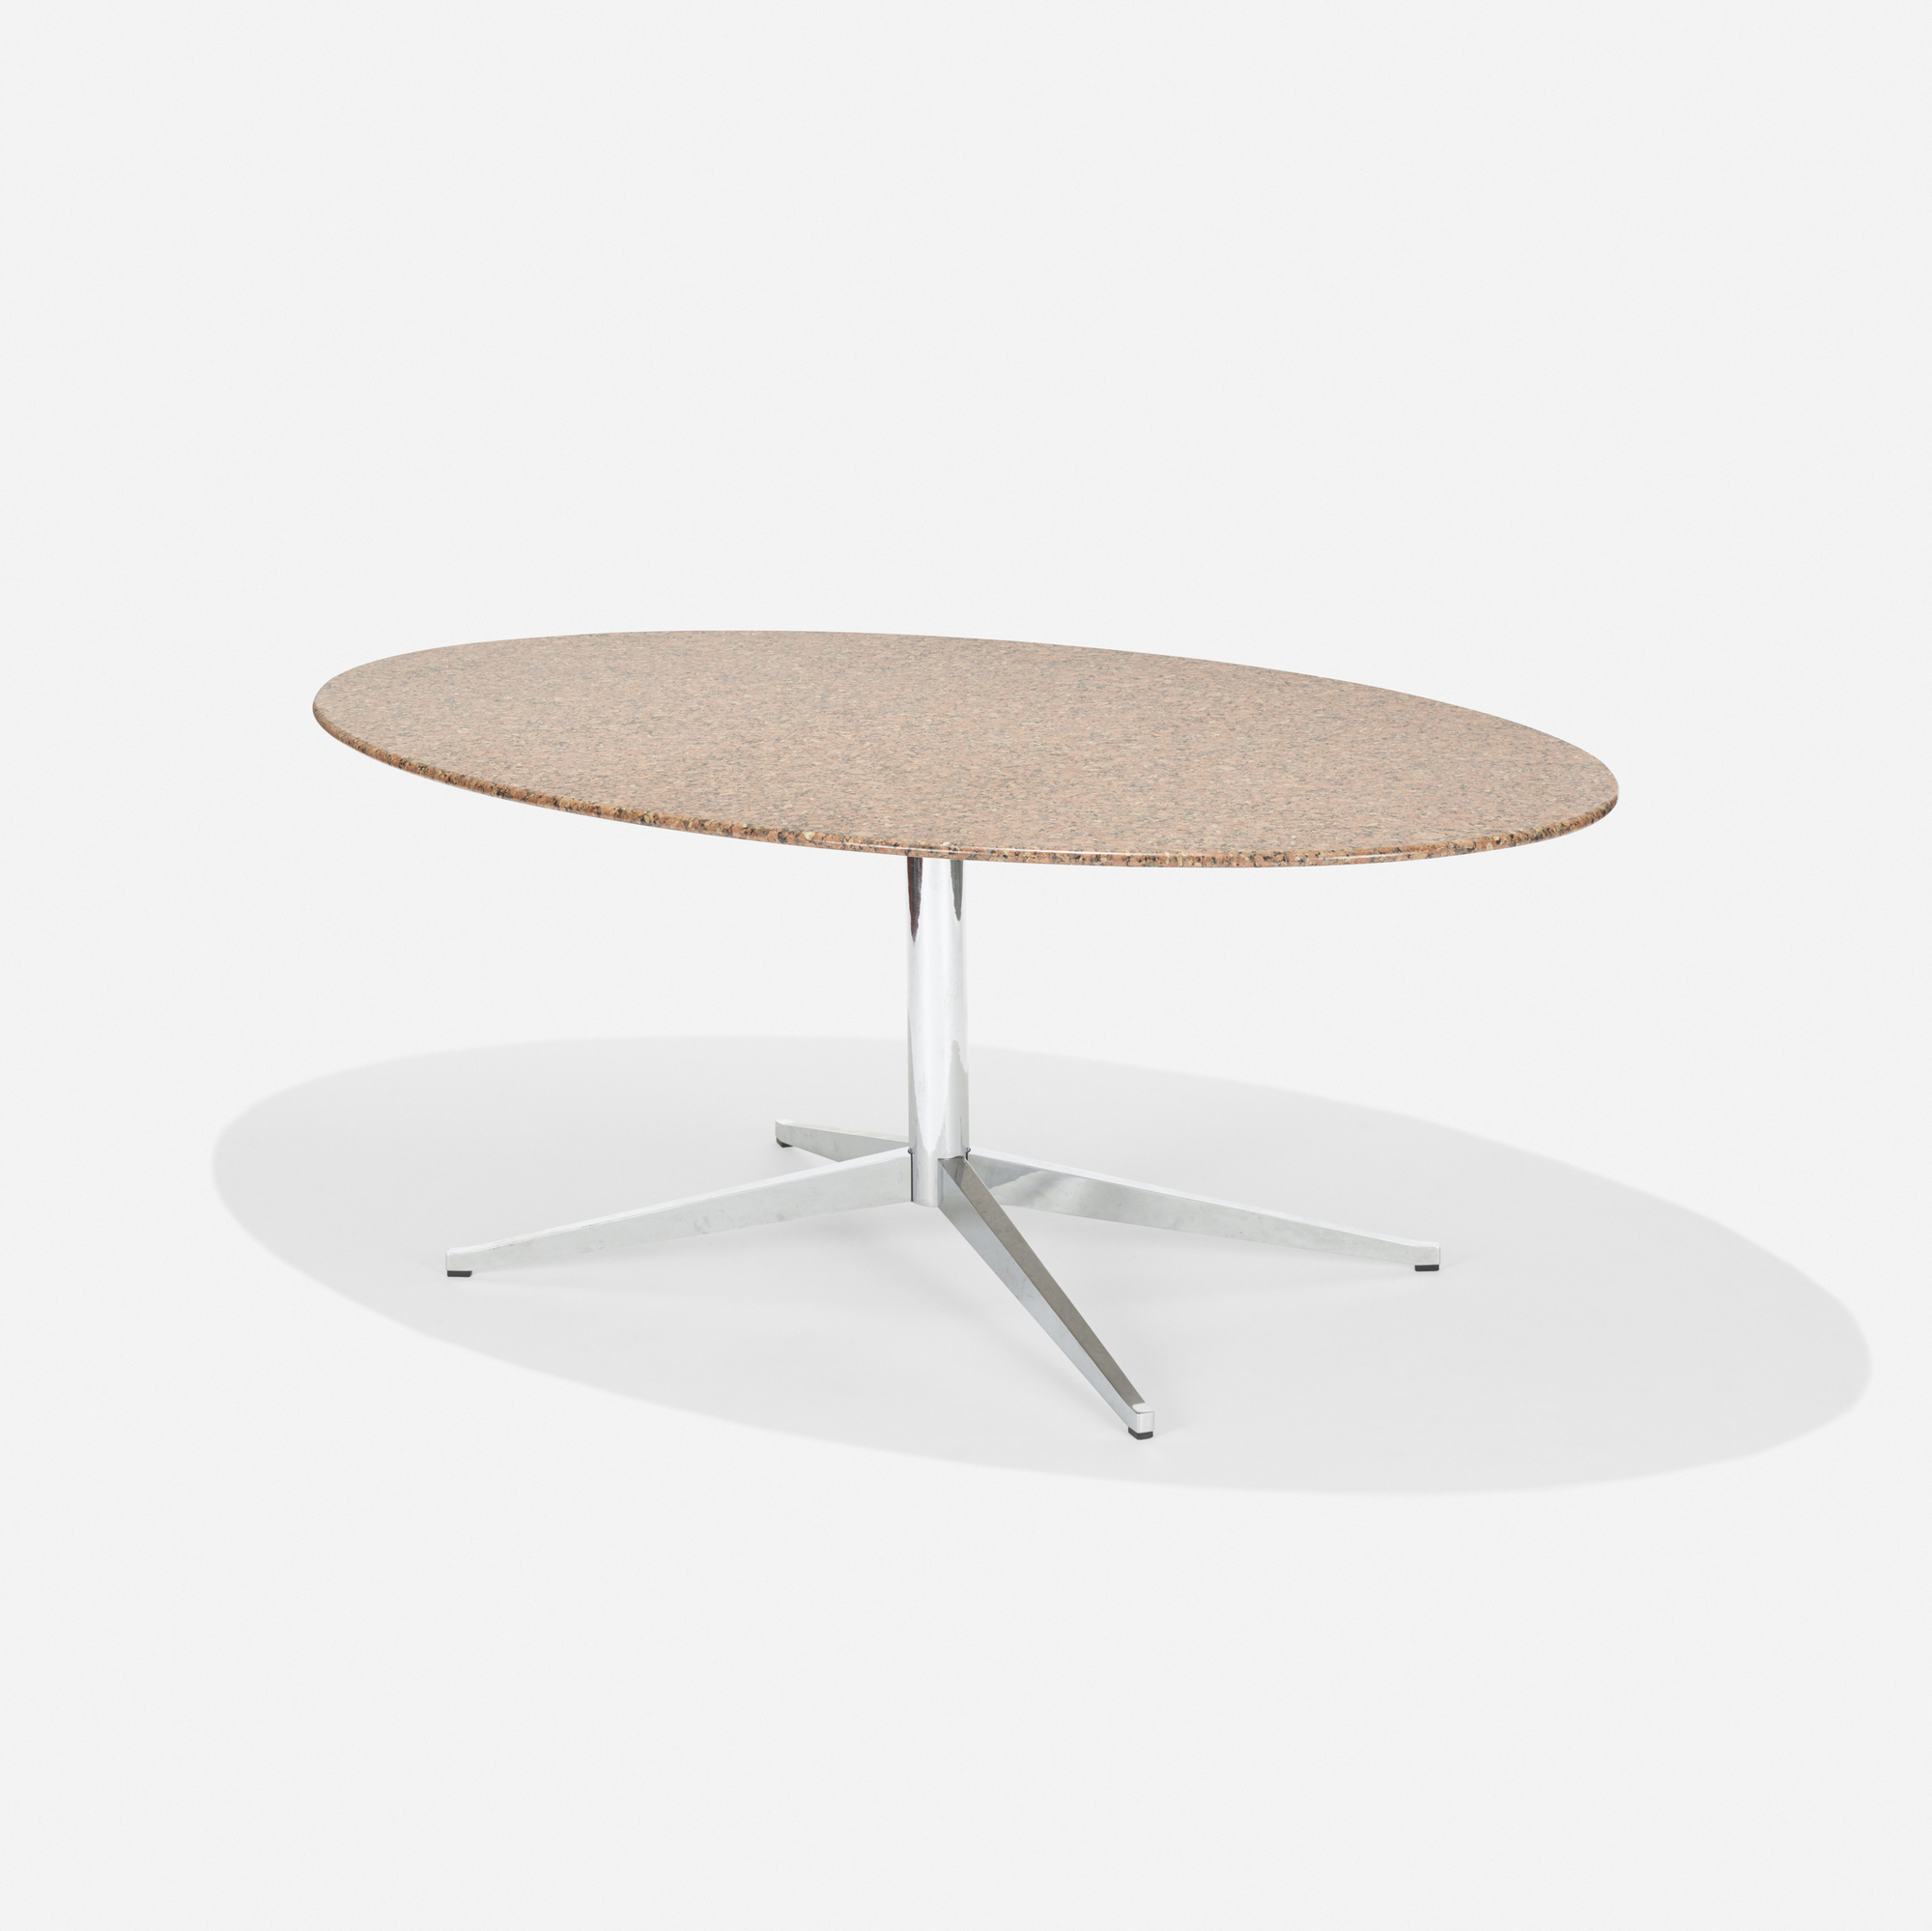 Knoll Table 368 Florence Knoll Dining Table Mass Modern Day 1 9 August